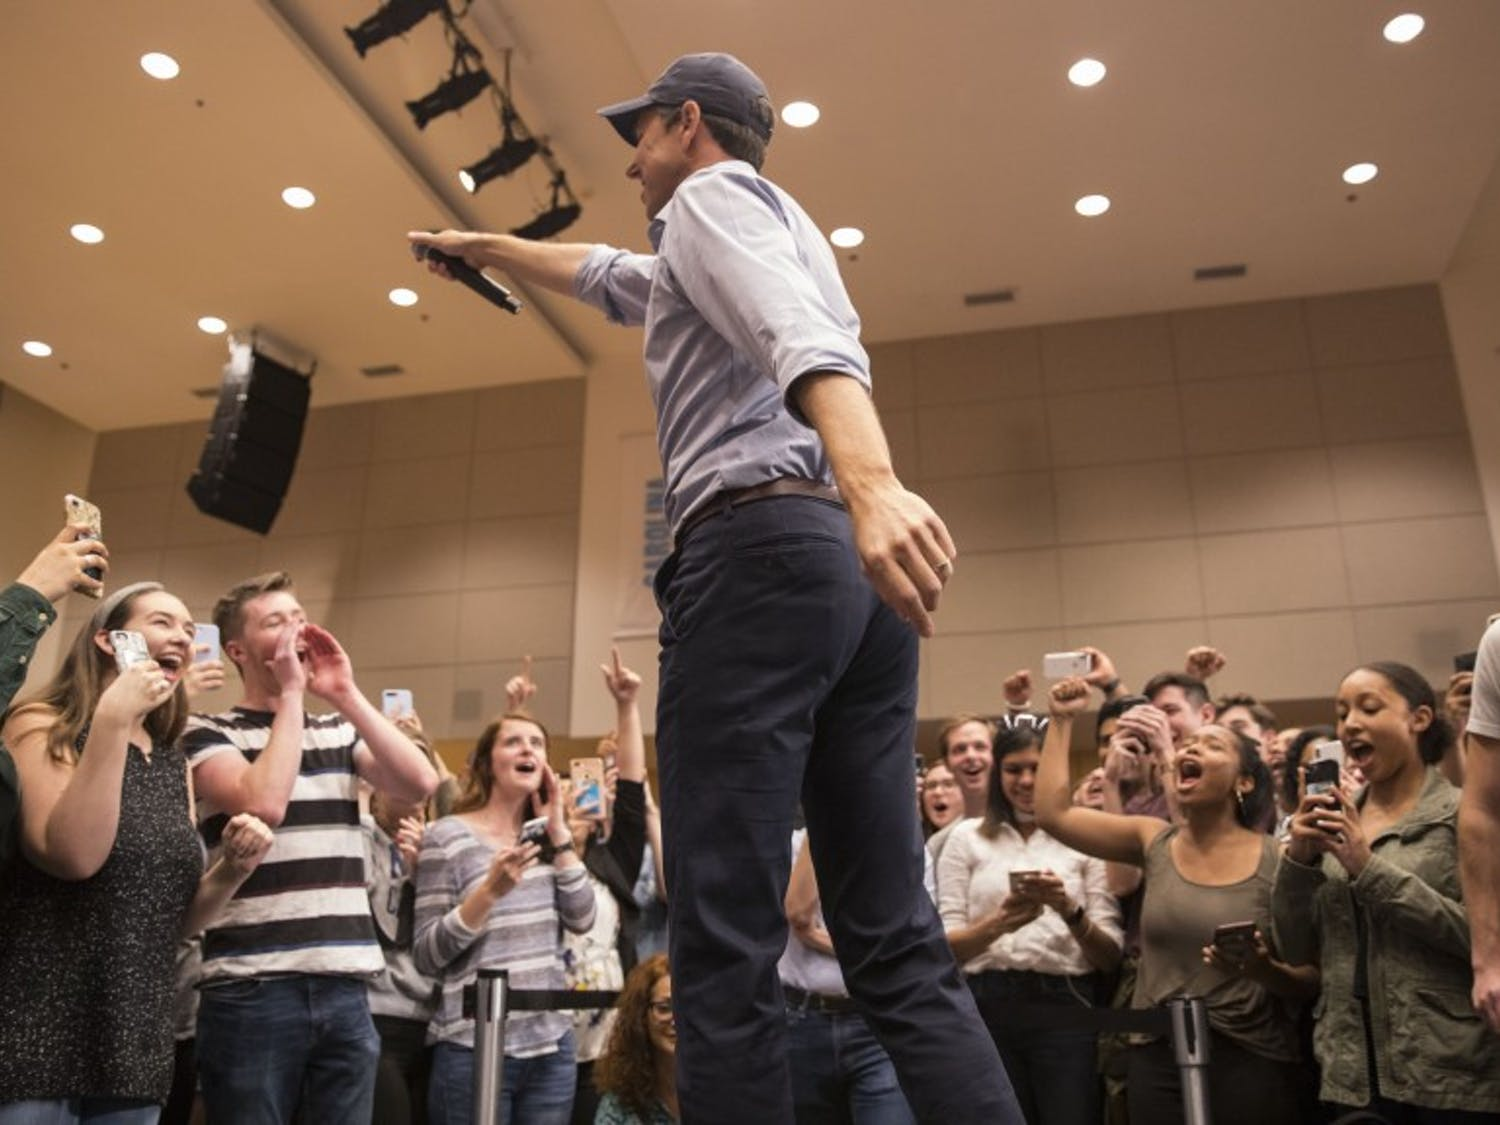 Democratic presidential candidate Beto O'Rourke visits UNC-Chapel Hill and leads students in a Tar Heels chant on Monday, April 15, 2019 in the Great Hall of the Student Union.